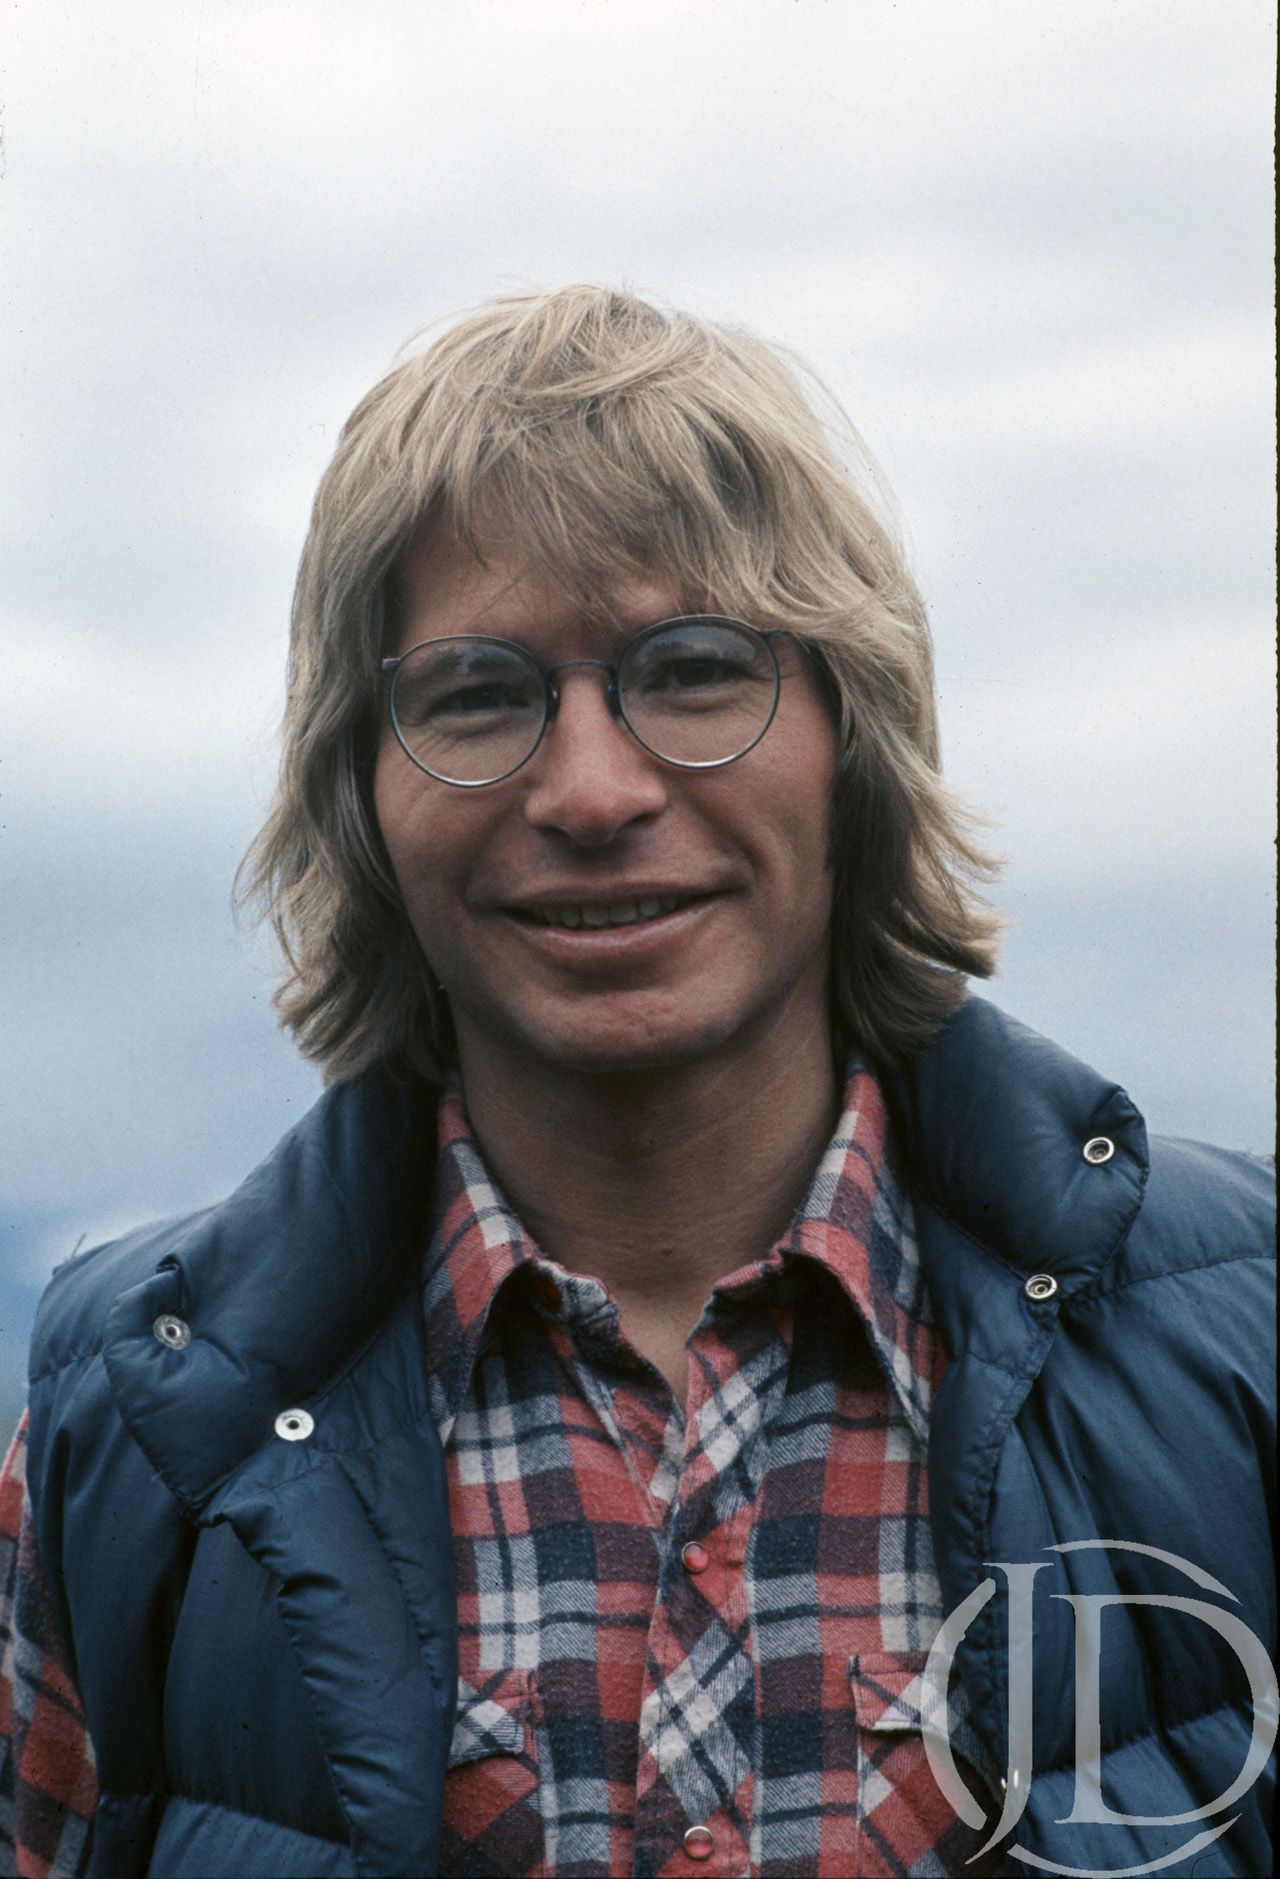 john denver leaving on a jet planejohn denver country roads, john denver annie's song перевод, john denver - annie's song, john denver country roads chords, john denver country roads скачать, john denver leaving on a jet plane, john denver слушать, john denver songs, john denver i want to live, john denver annie's song mp3, john denver mp3, john denver best songs, john denver take me home, john denver vocal range, john denver – country roads lyrics, john denver annie's song lyrics, john denver going camping, john denver carolina in my mind lyrics, john denver -, john denver carolina